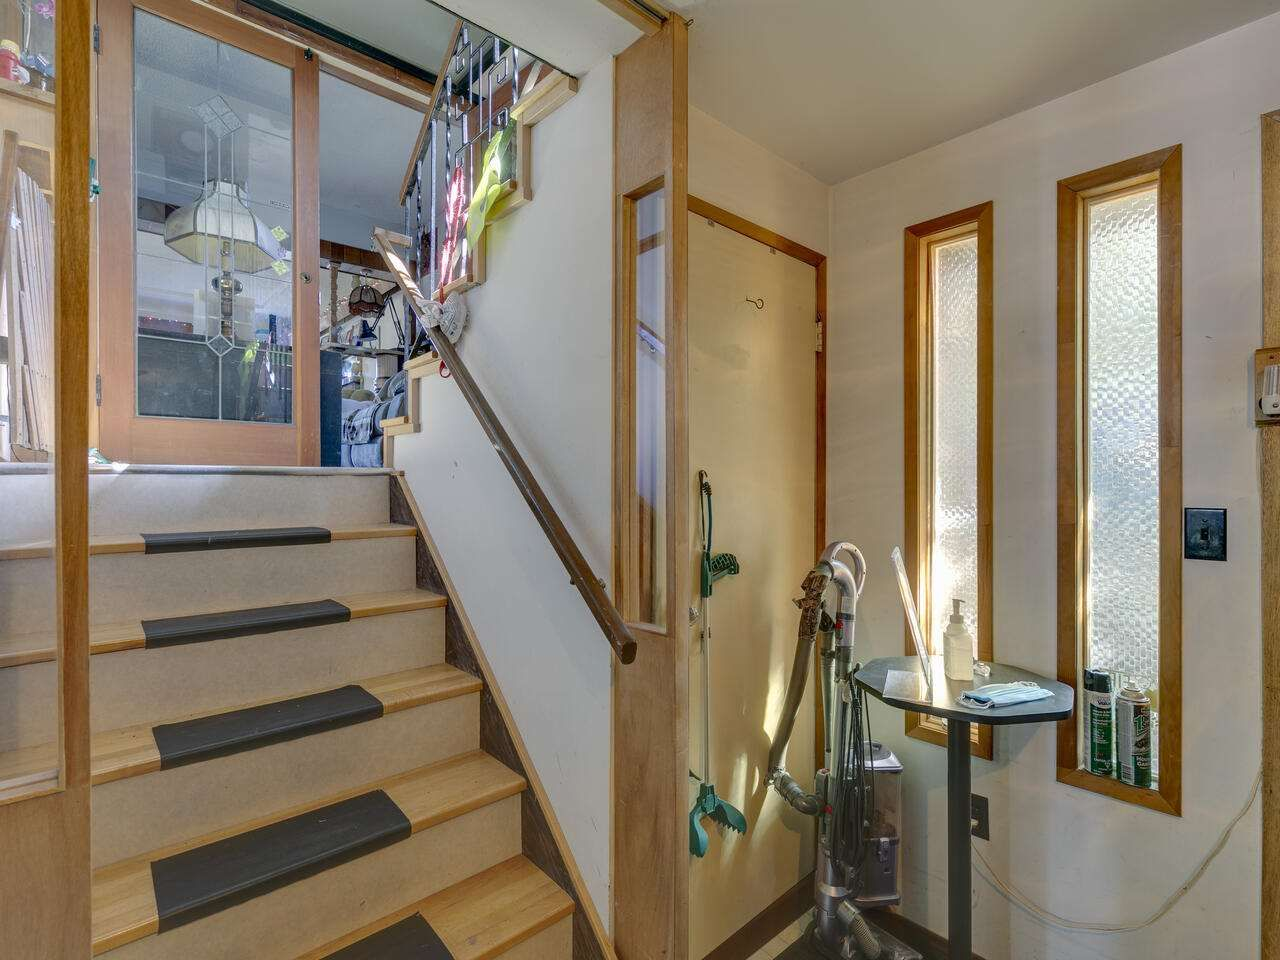 """Photo 12: Photos: 2796 E 4TH Avenue in Vancouver: Renfrew VE House for sale in """"Renfrew Heights"""" (Vancouver East)  : MLS®# R2496647"""